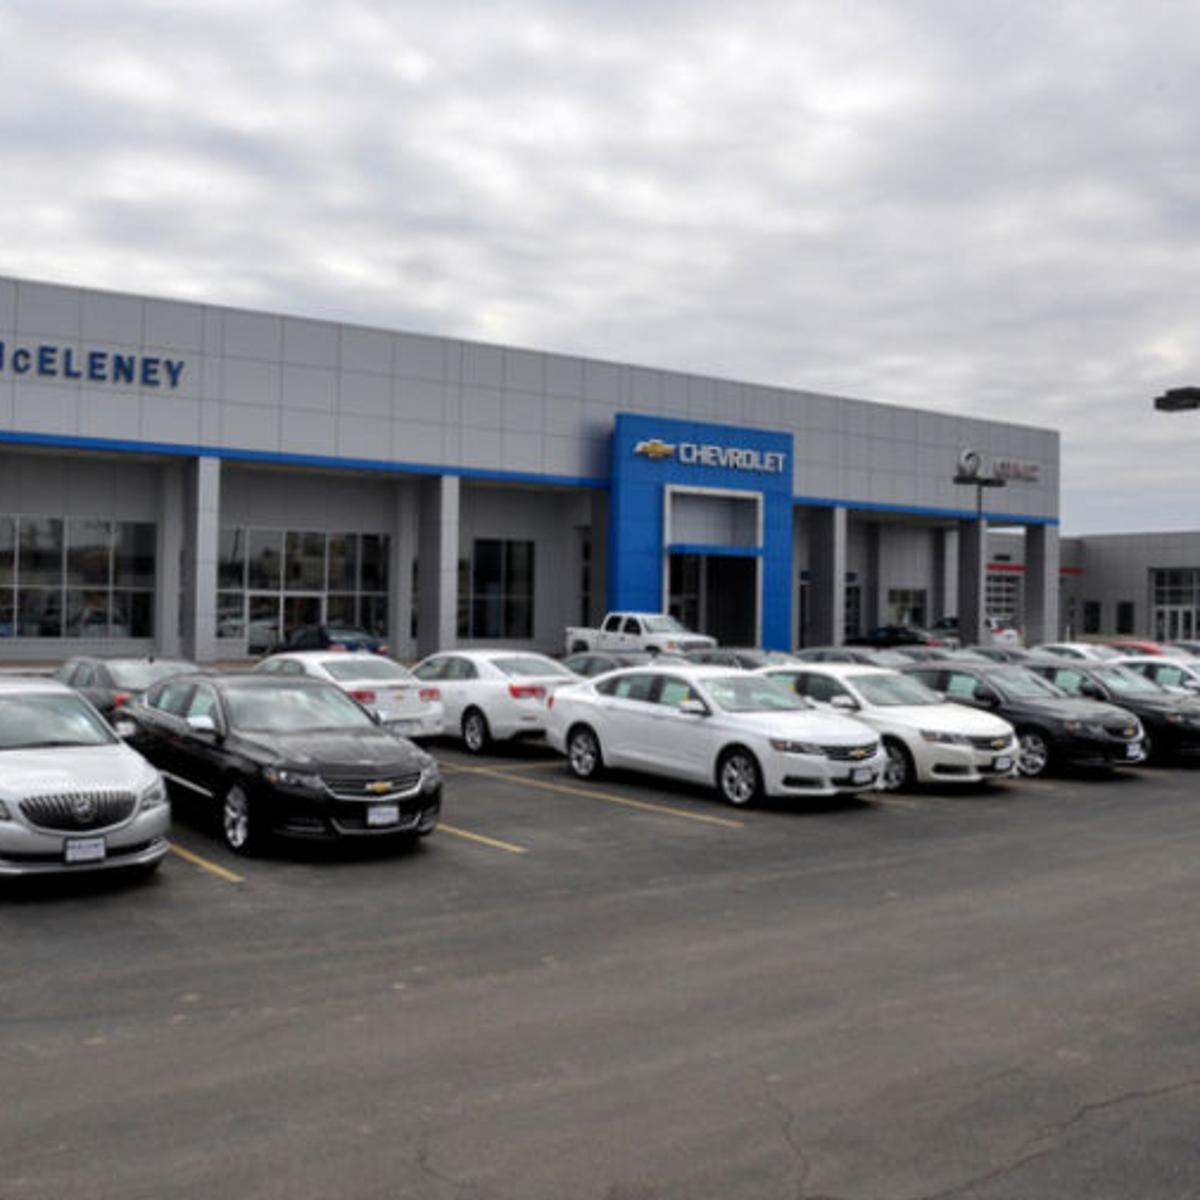 Mceleney S Selling To Billion Auto News Clintonherald Com